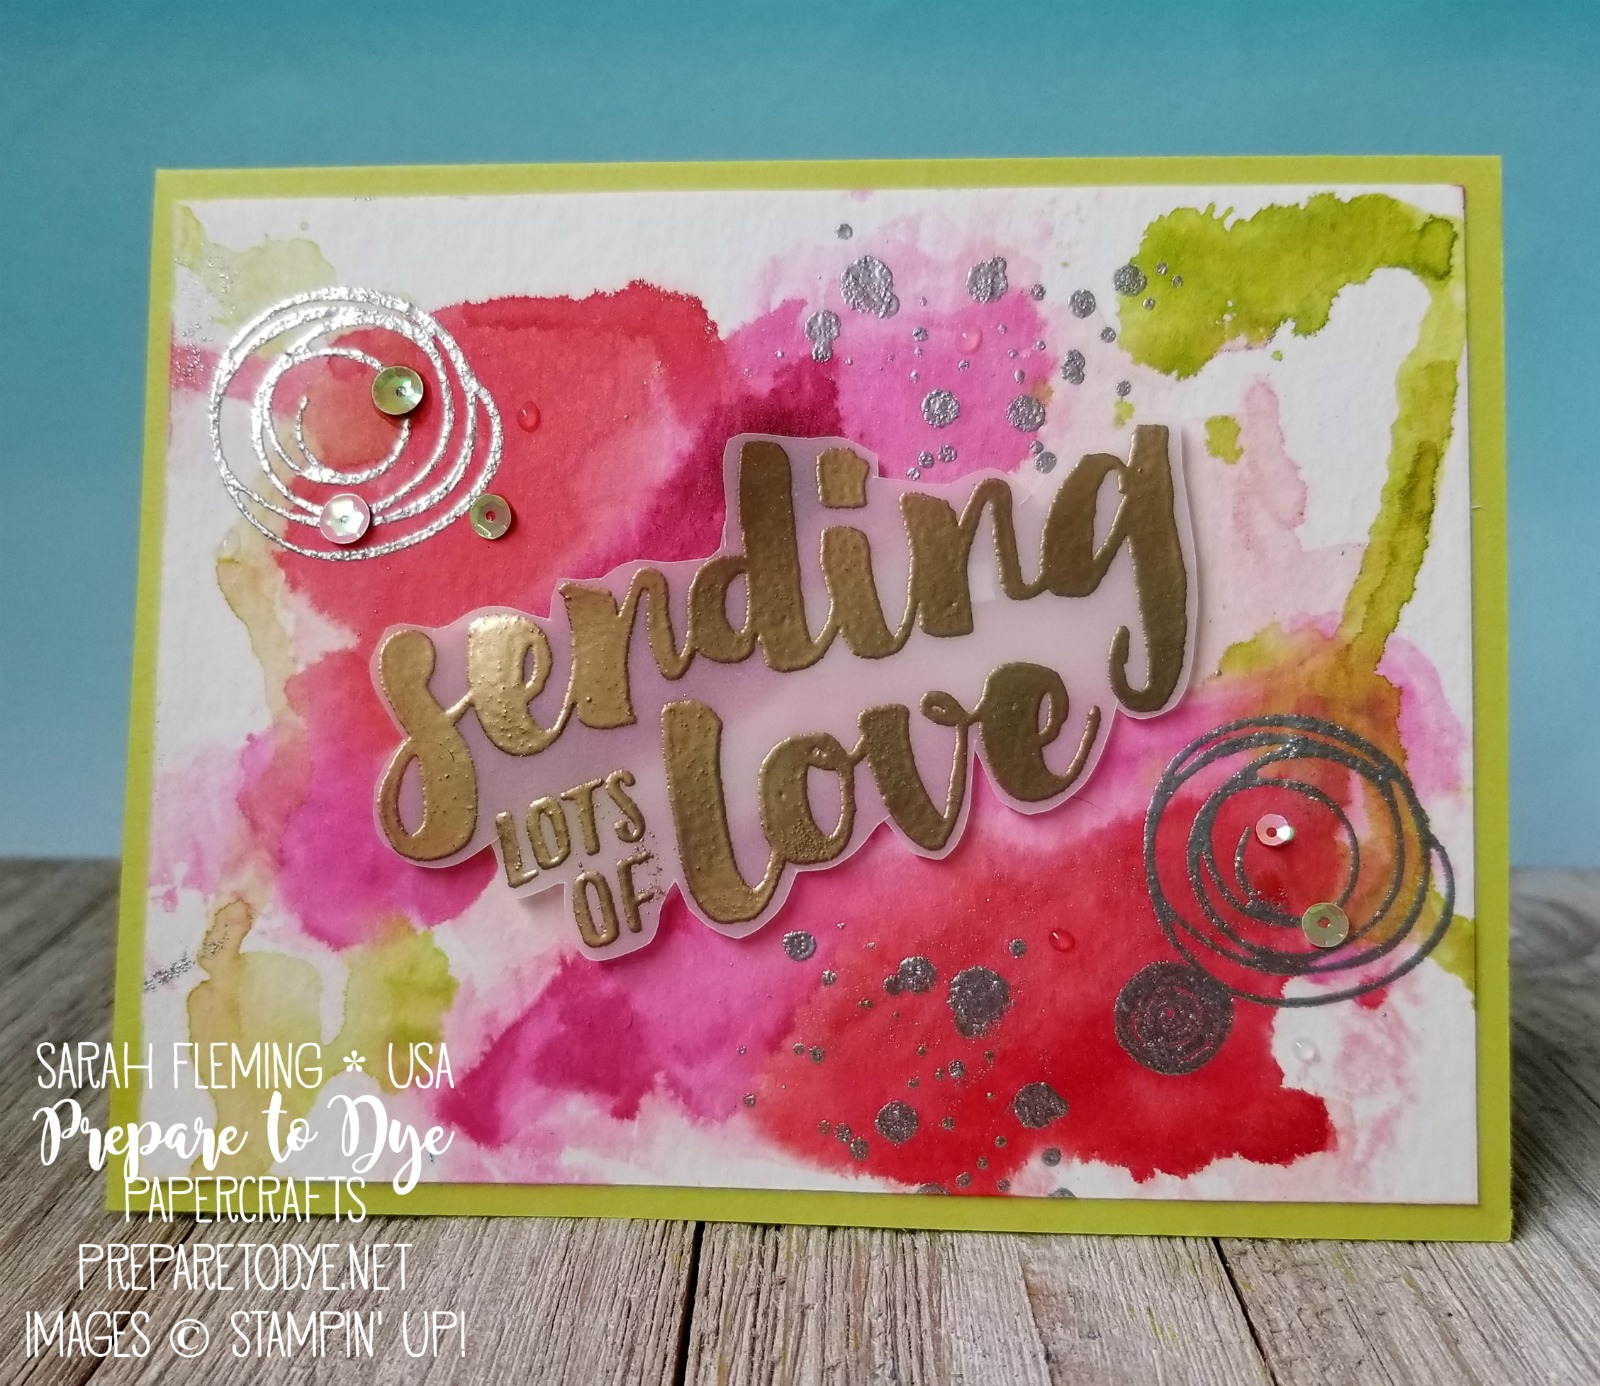 Stampin' Up! Lots of Love stamp set with Swirly Bird, watercolor with Aqua Painters and reinkers, handmade love card - Sarah Fleming - Prepare to Dye Papercrafts